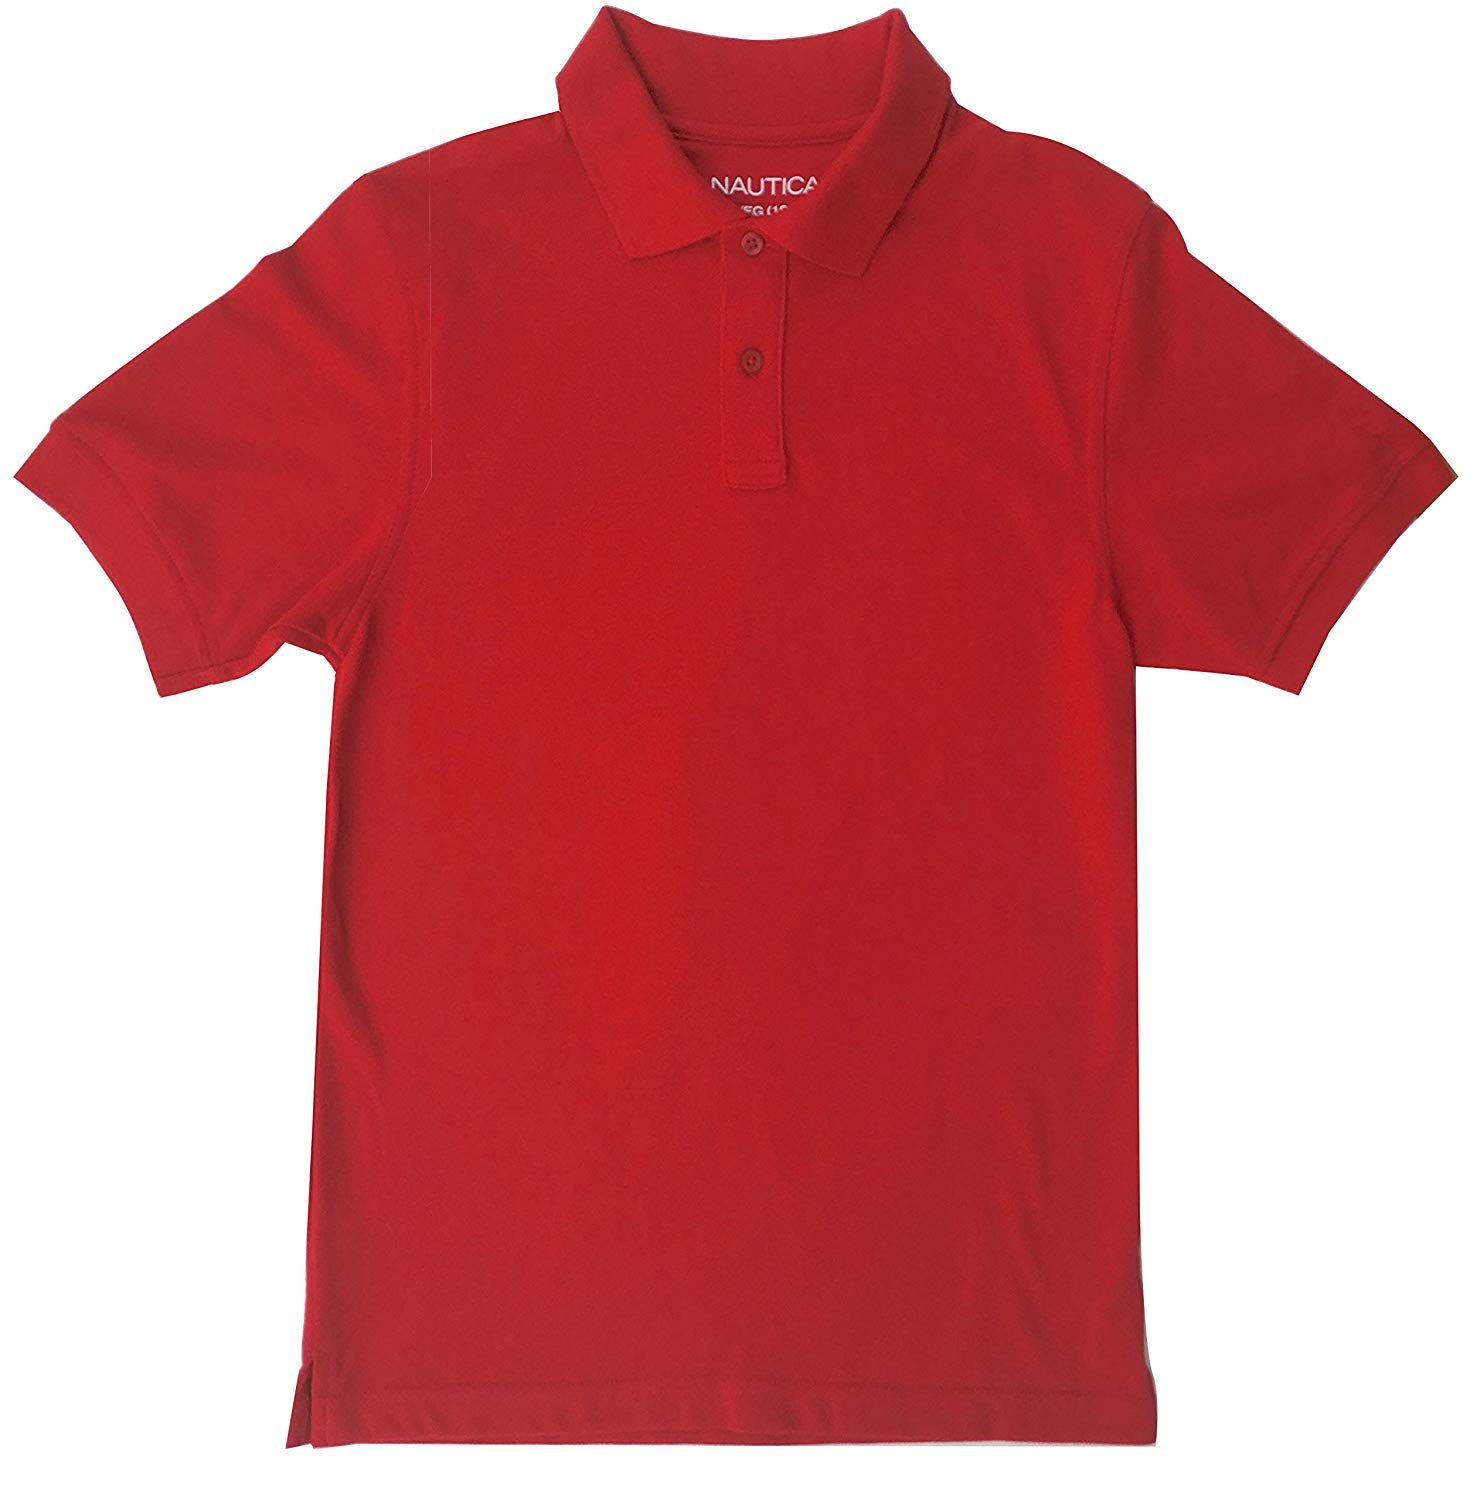 74159a948 Get Quotations · Nautica Boys Polo Shirt Short Sleeves Red XL (18-20)